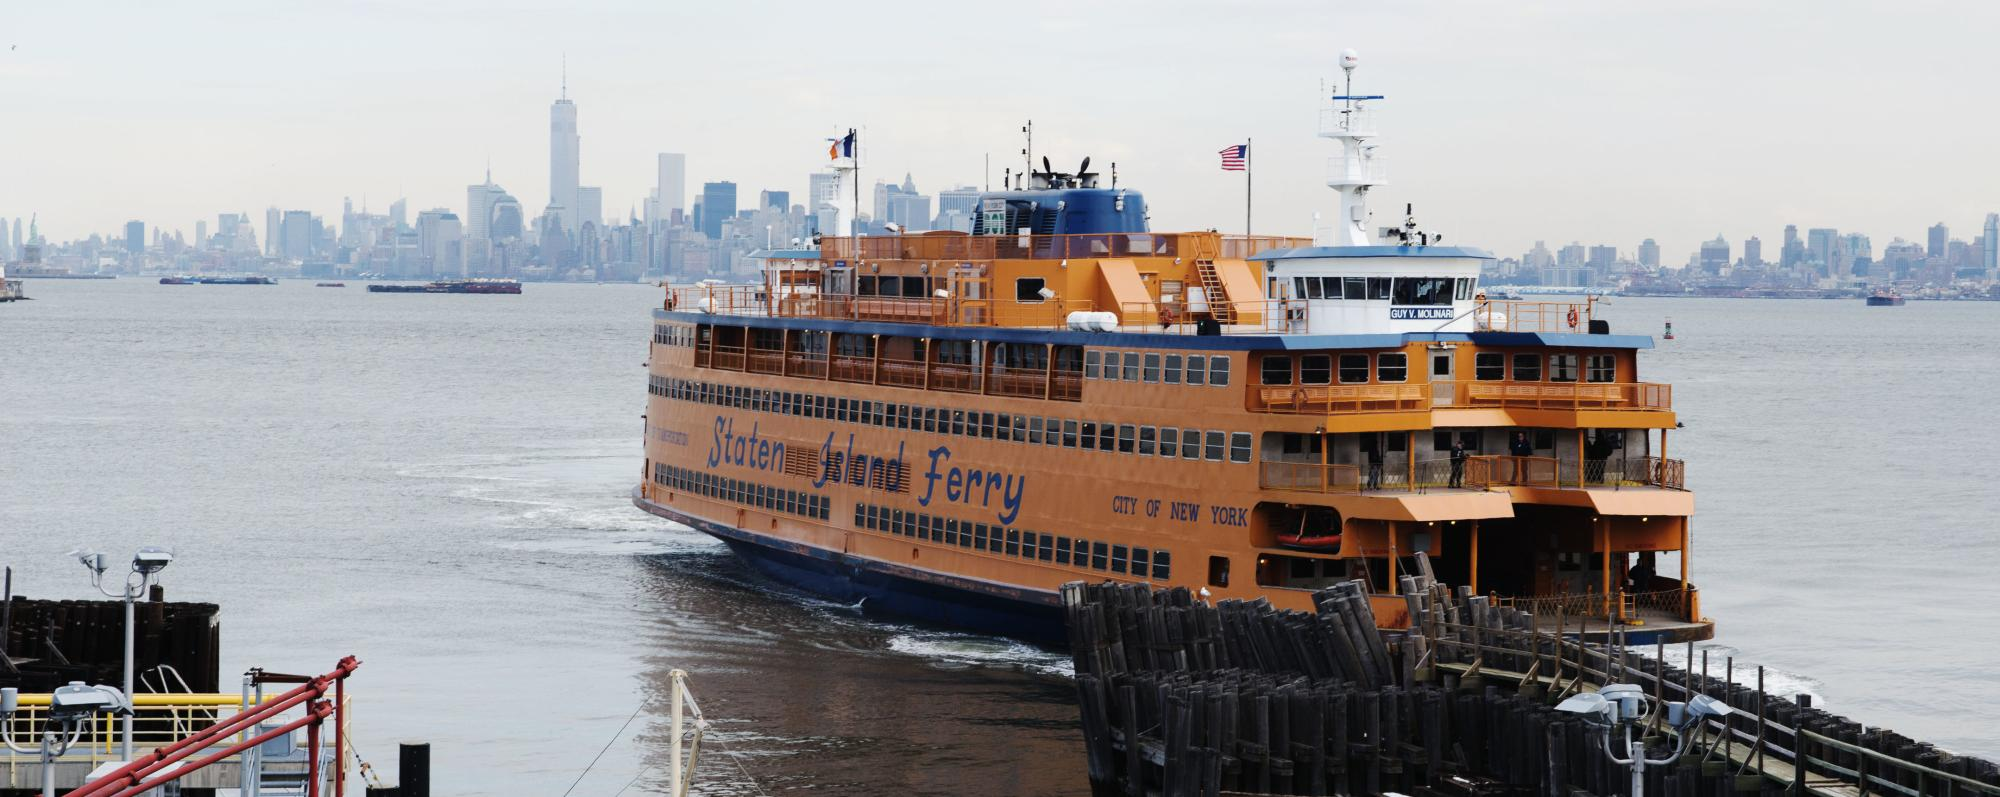 Staten Island Ferry - Photo by Julienne Schaer - Courtesy of NYC & Co